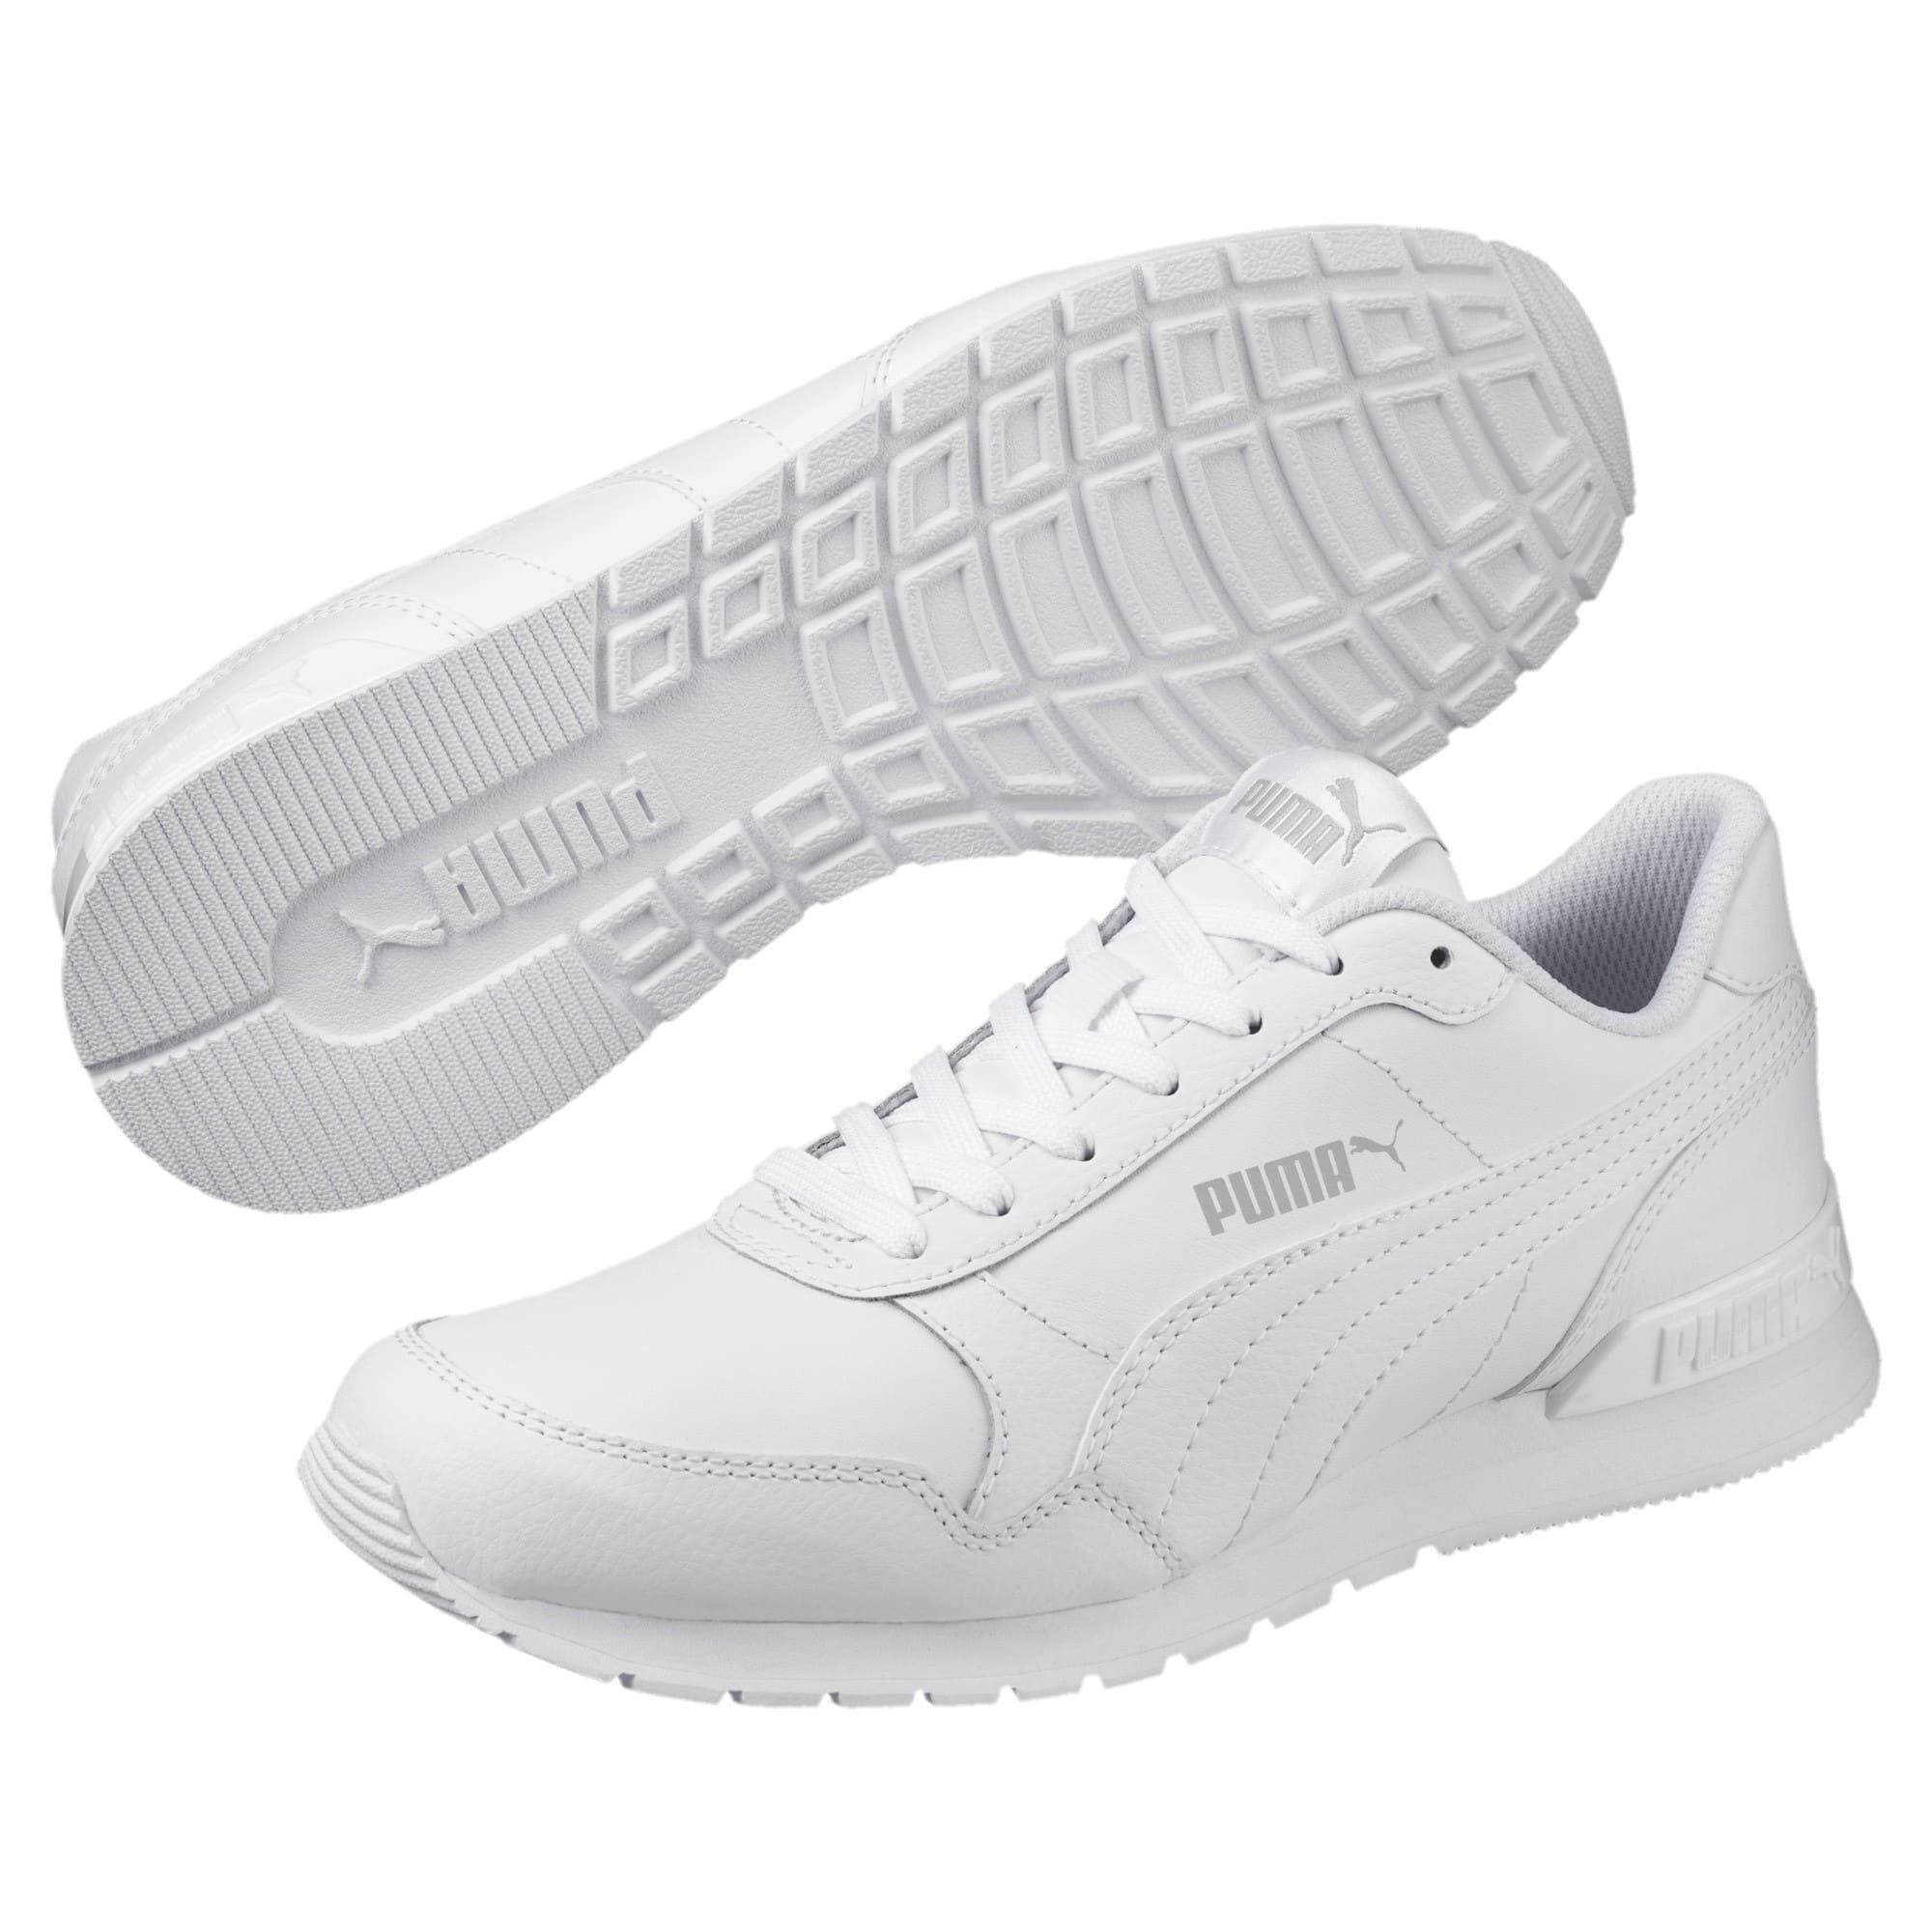 Thumbnail 2 of ST Runner v2 Leather Sneakers JR, Puma White-Gray Violet, medium